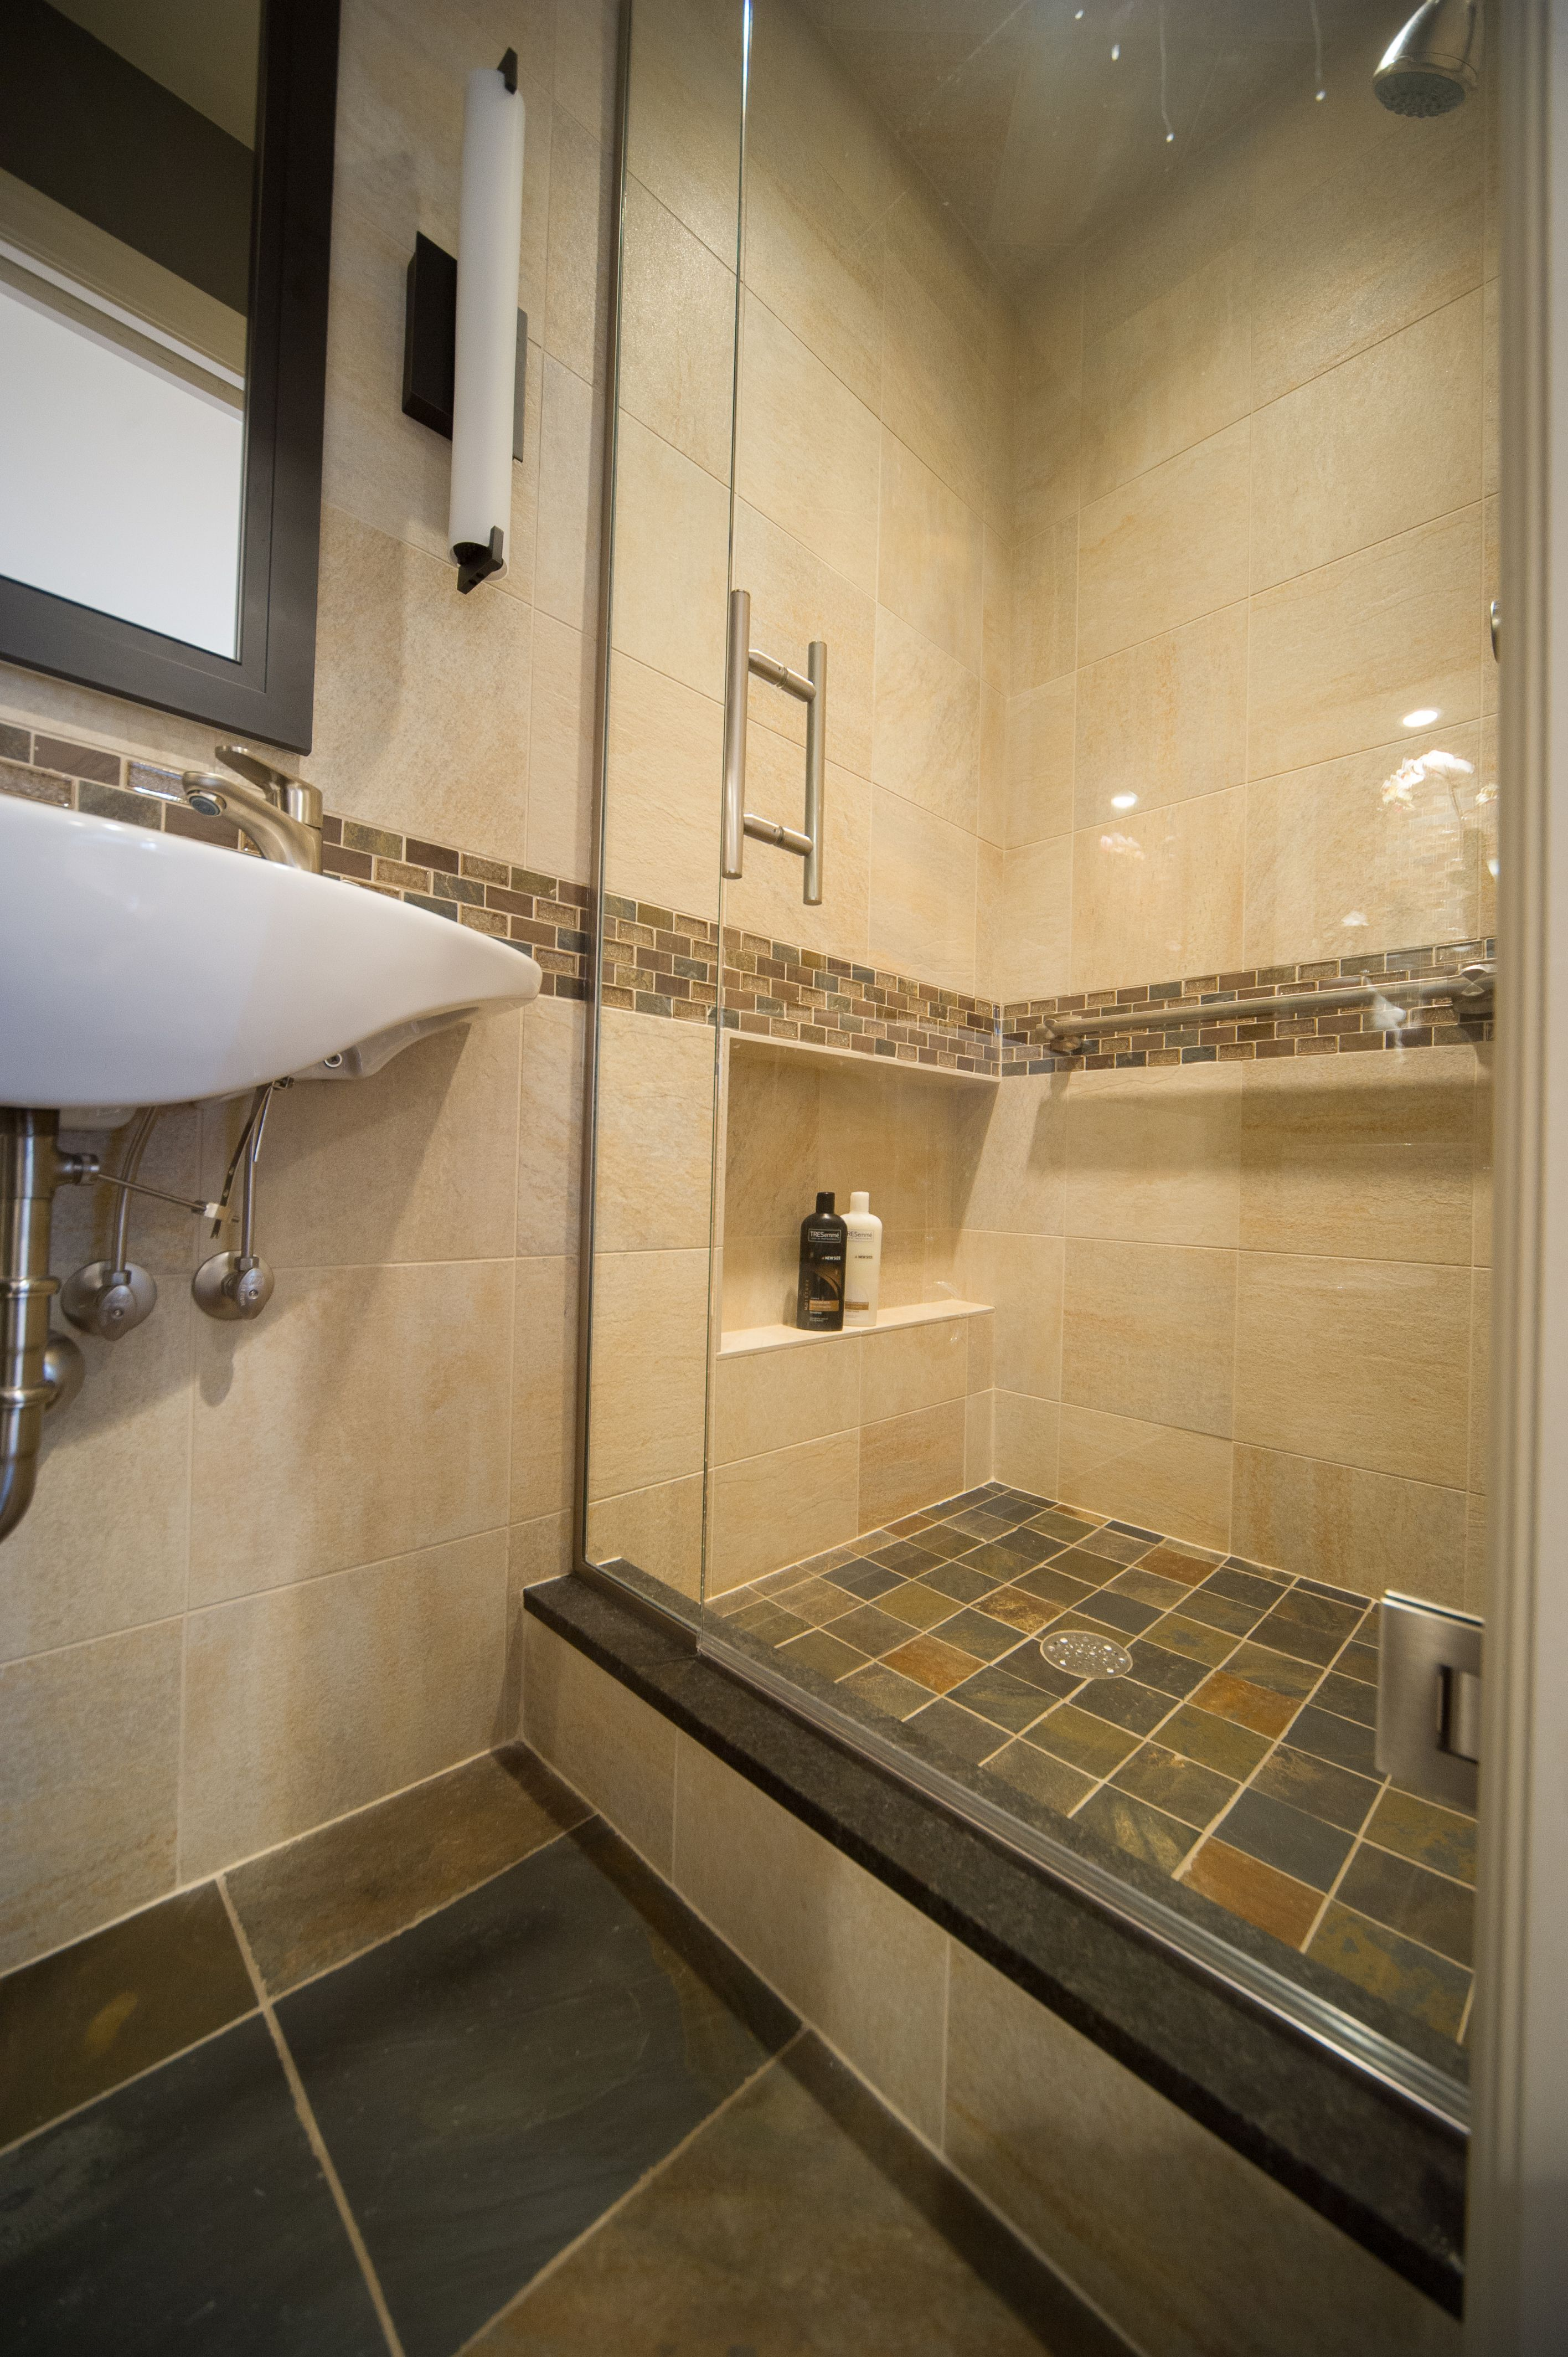 25 bathroom designs ideas for small spaces to look amazing - Simple bathroom designs for small spaces ...